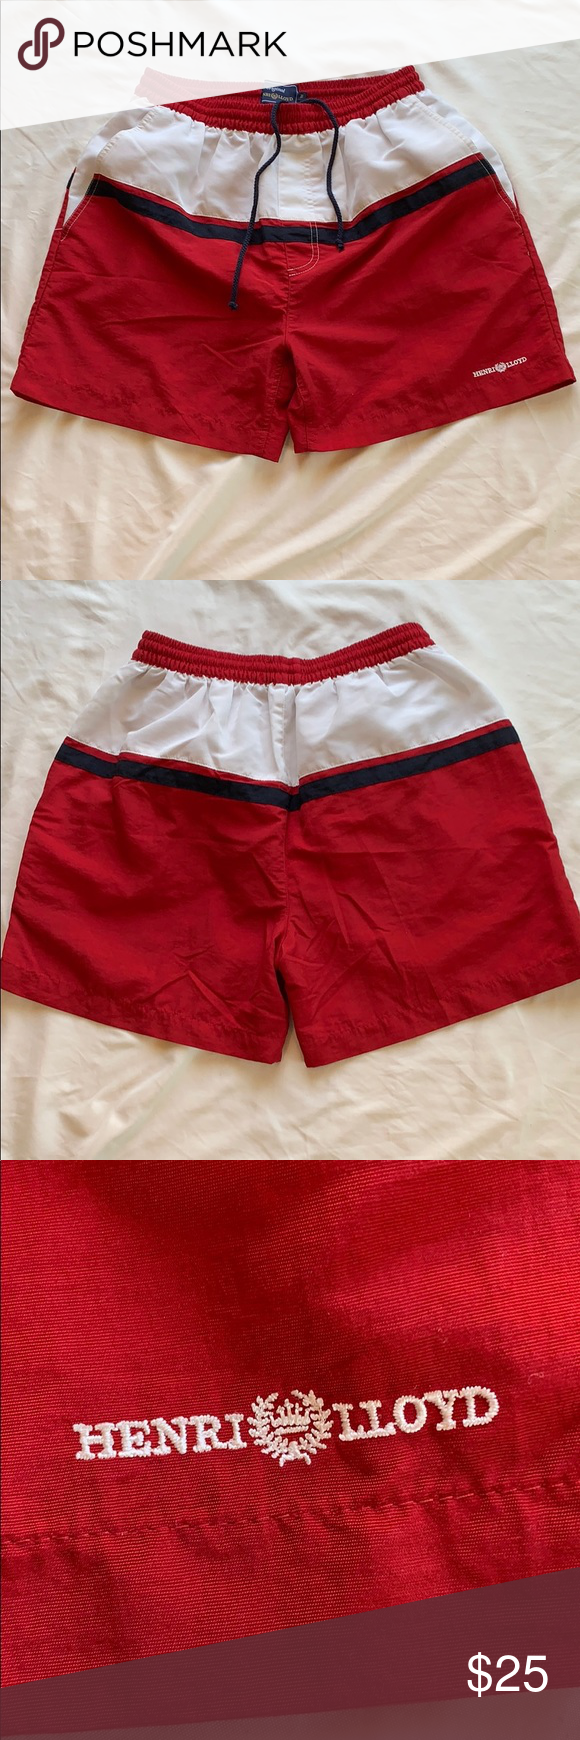 acf9c8d27a Men's Henri Lloyd swim shorts size medium Men's Henri Lloyd swim shorts  size medium Red, white, And black striped I turned them inside out so that  you could ...